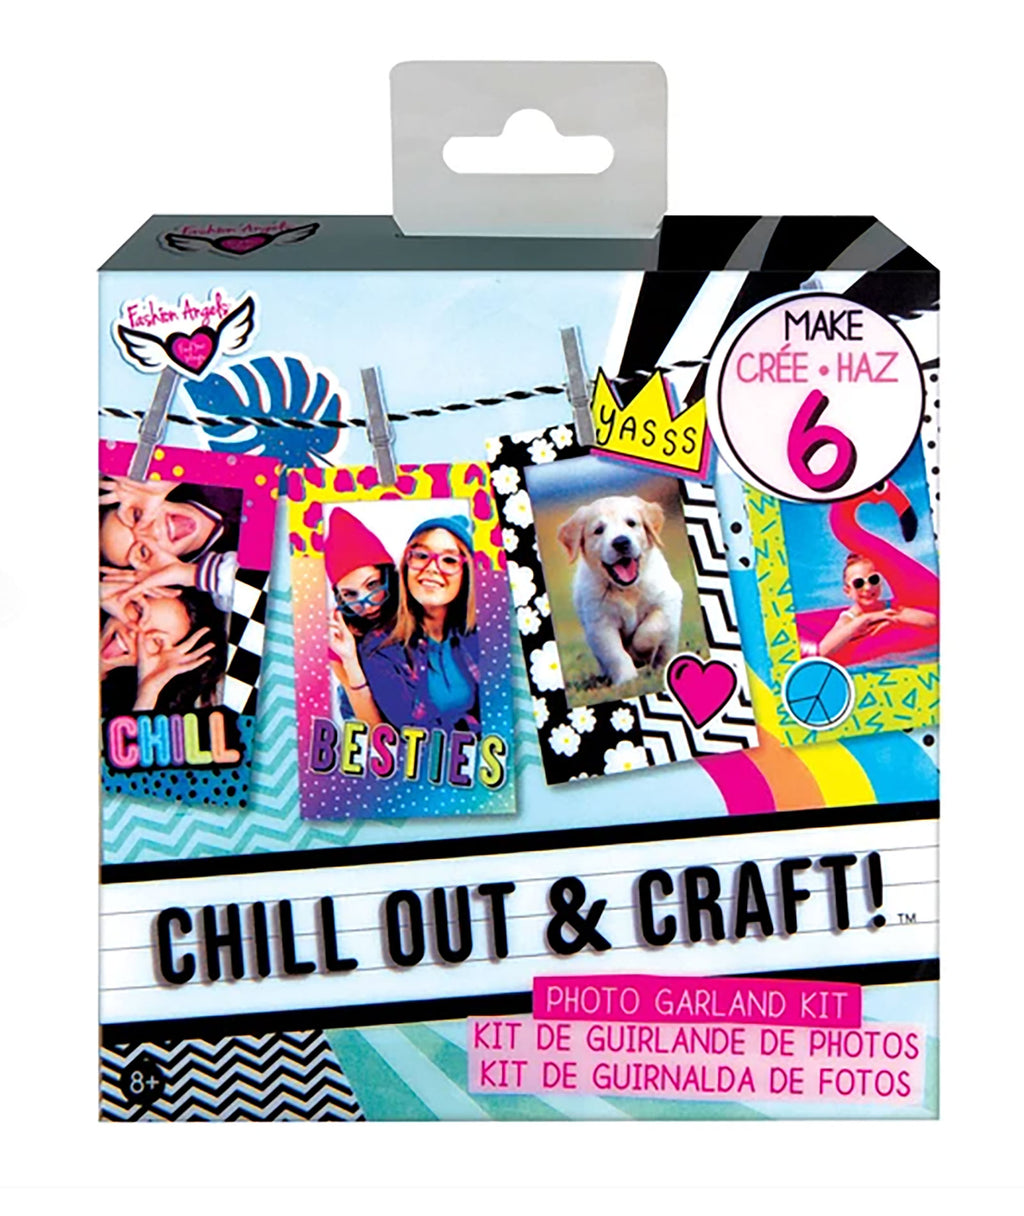 Fashion Angels Chill Out & Craft Photo Garland Kit